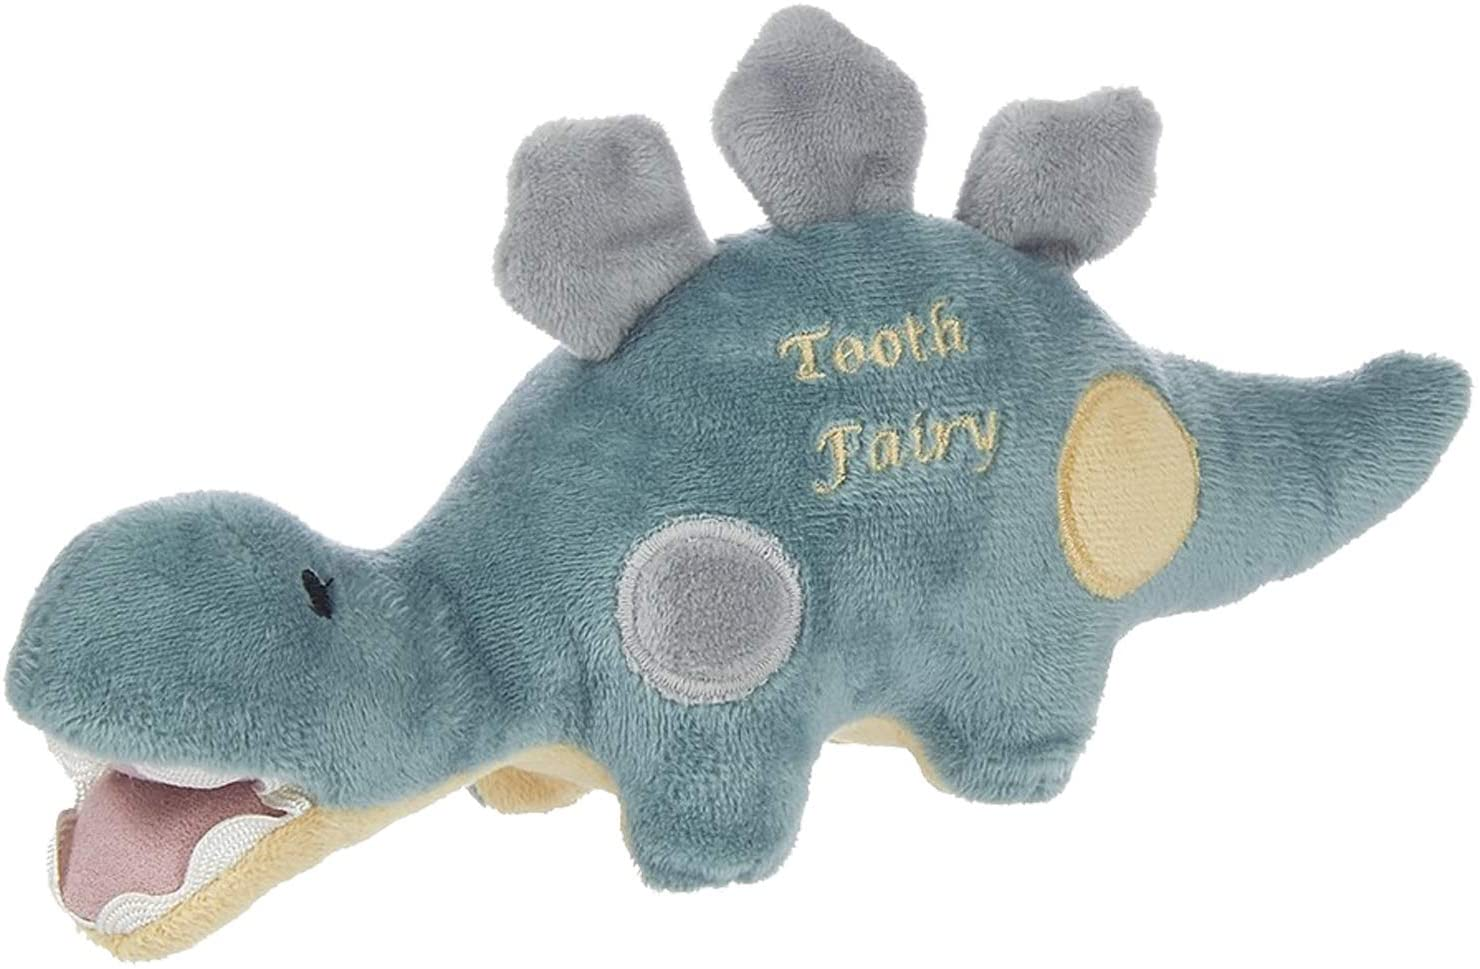 Maison Chic | Dino The Dinosaur Tooth Fairy Pillow Stuffed Animal Plush Figure with Pocket | Perfect First Loose Tooth Gift for Son, Grandson, Stepson, Nephew | Celebrate First Milestone